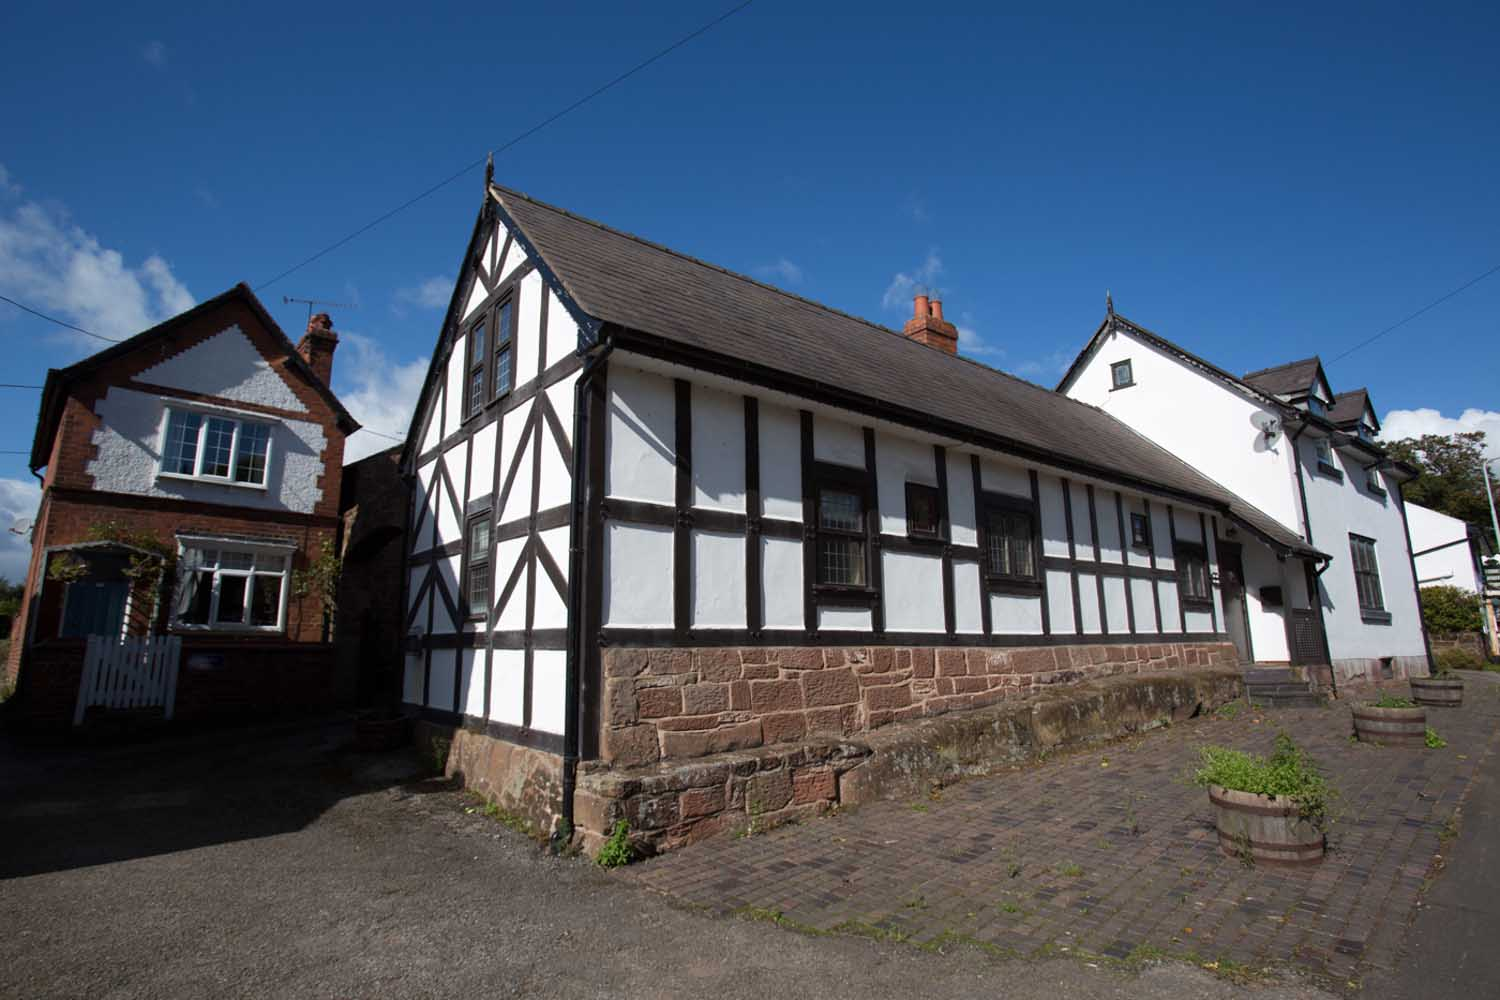 Village of Churton, Cheshire, England. The 17th century former Red Lion pub, now converted for residential purposes.